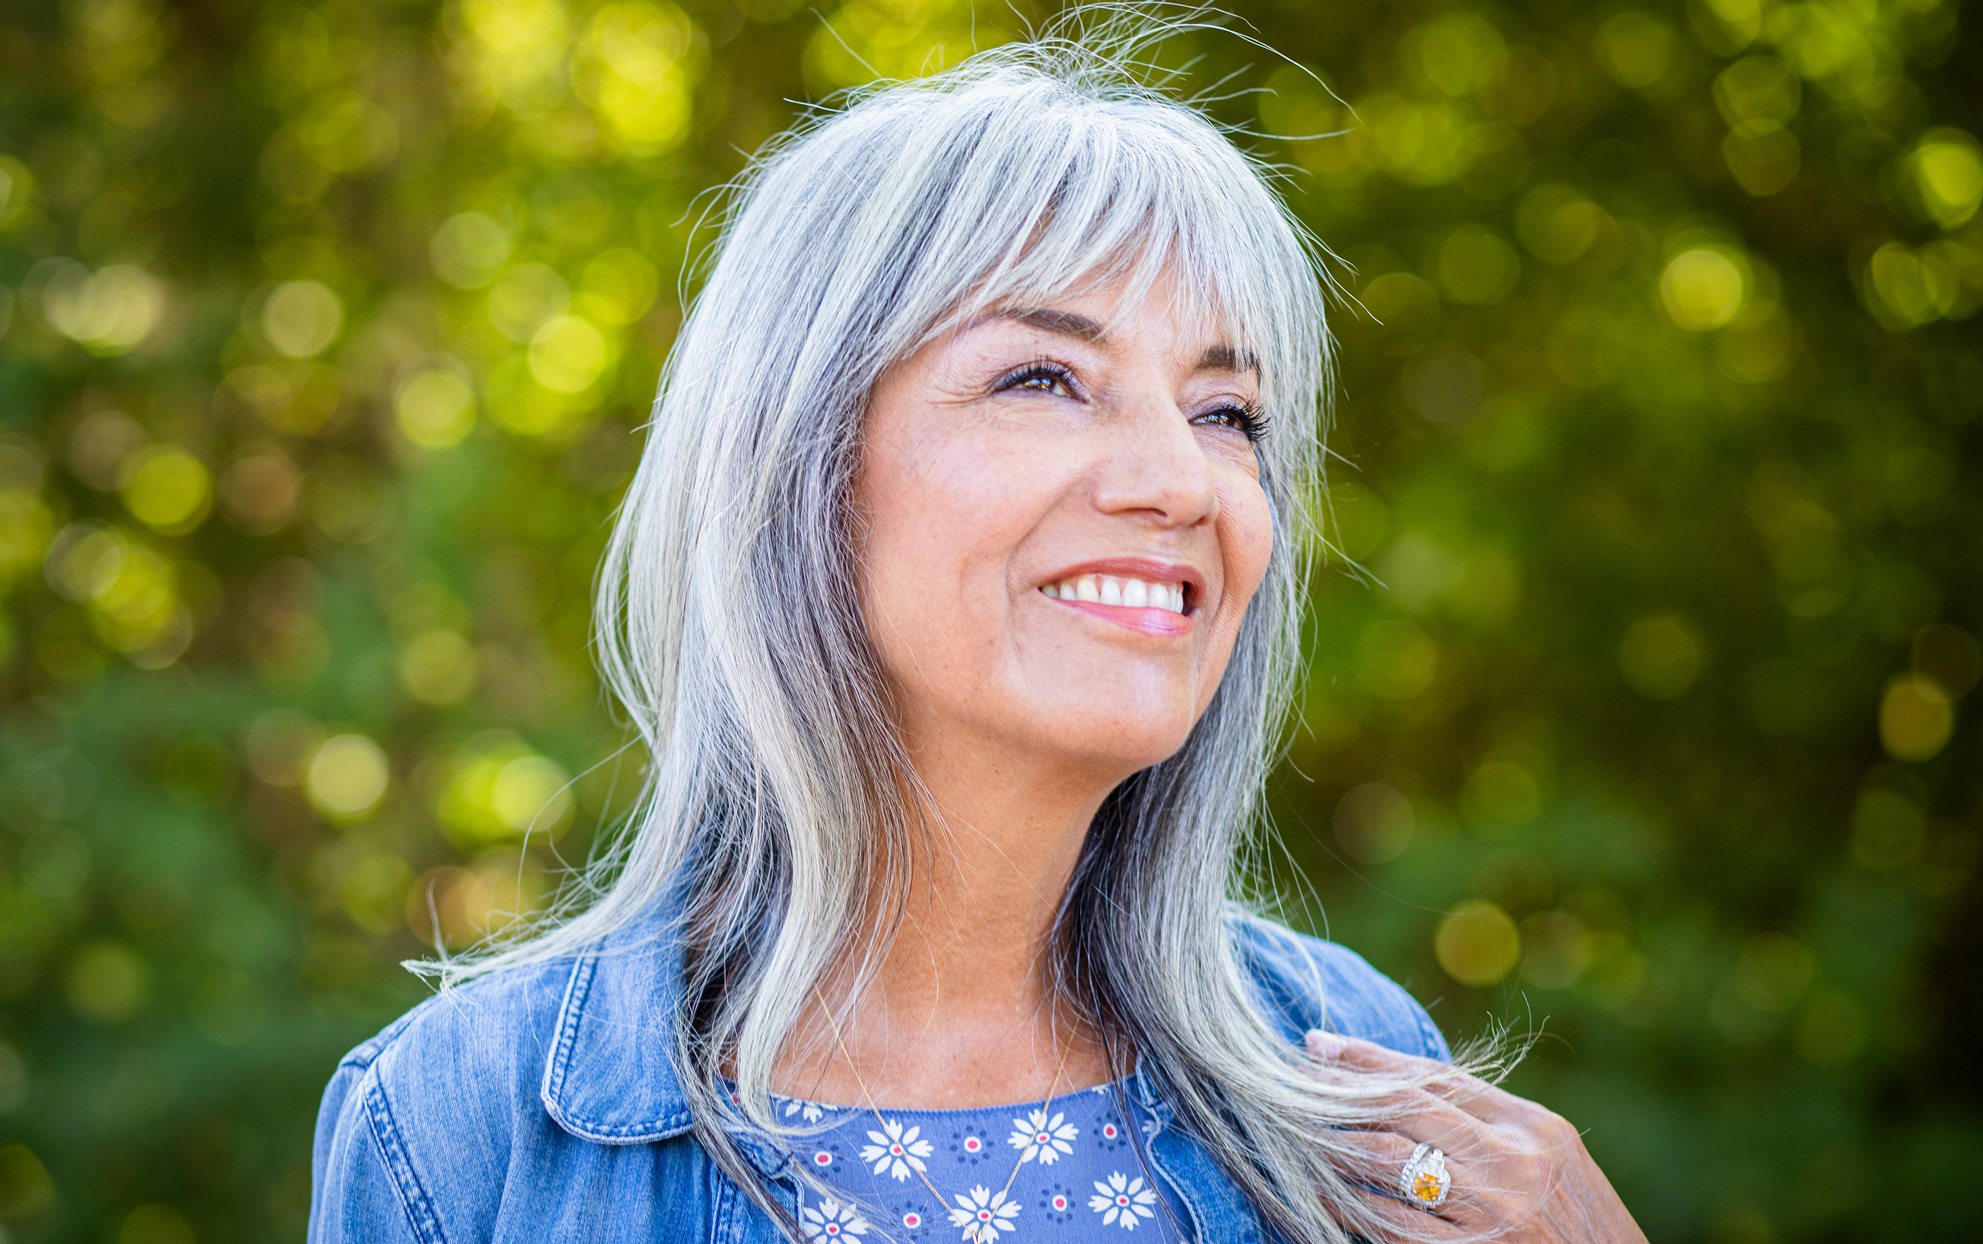 Woman with long, grey hair outside